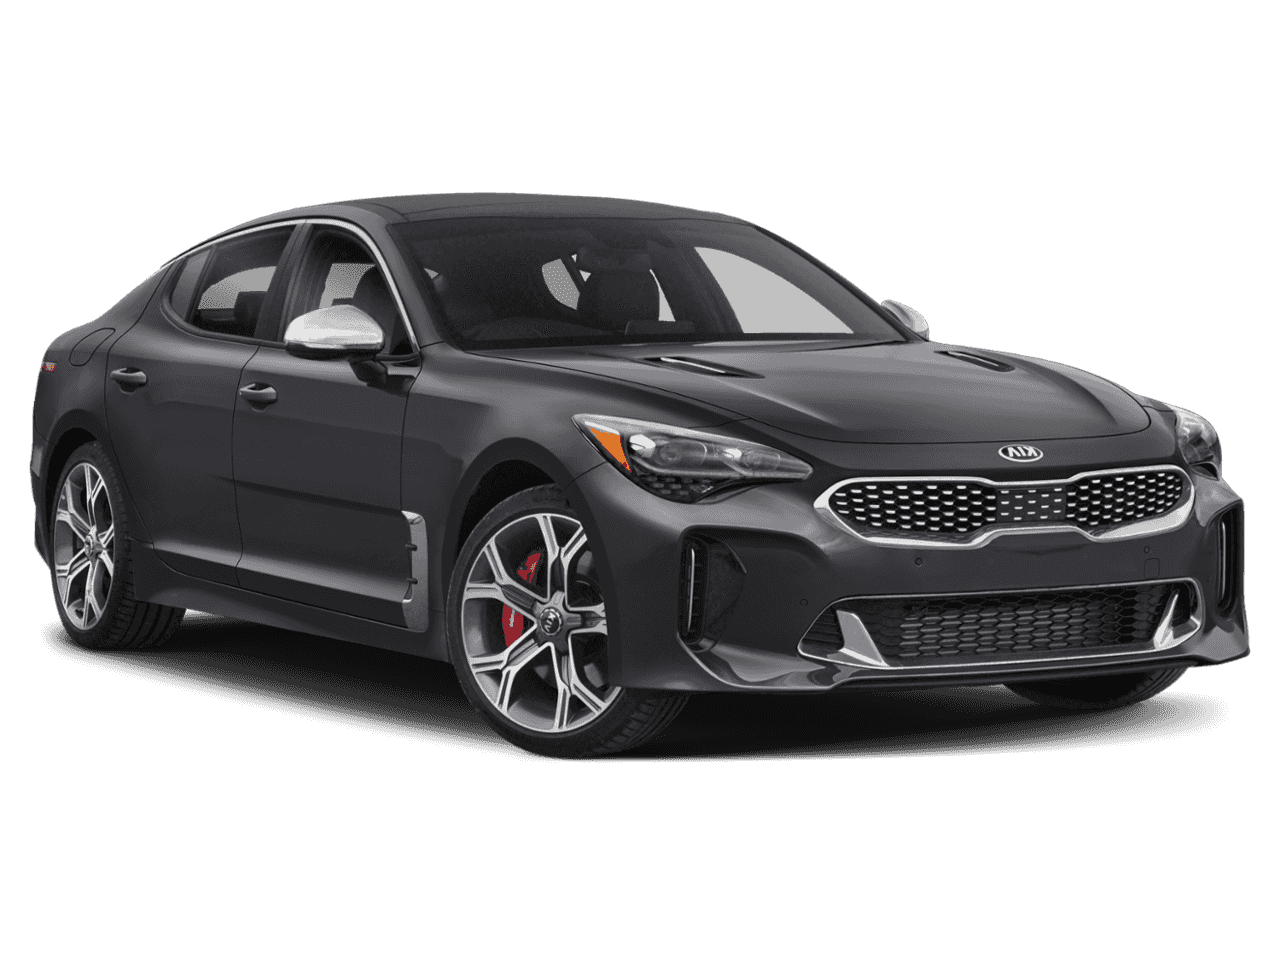 2019 Kia Stinger Premium With Navigation & AWD